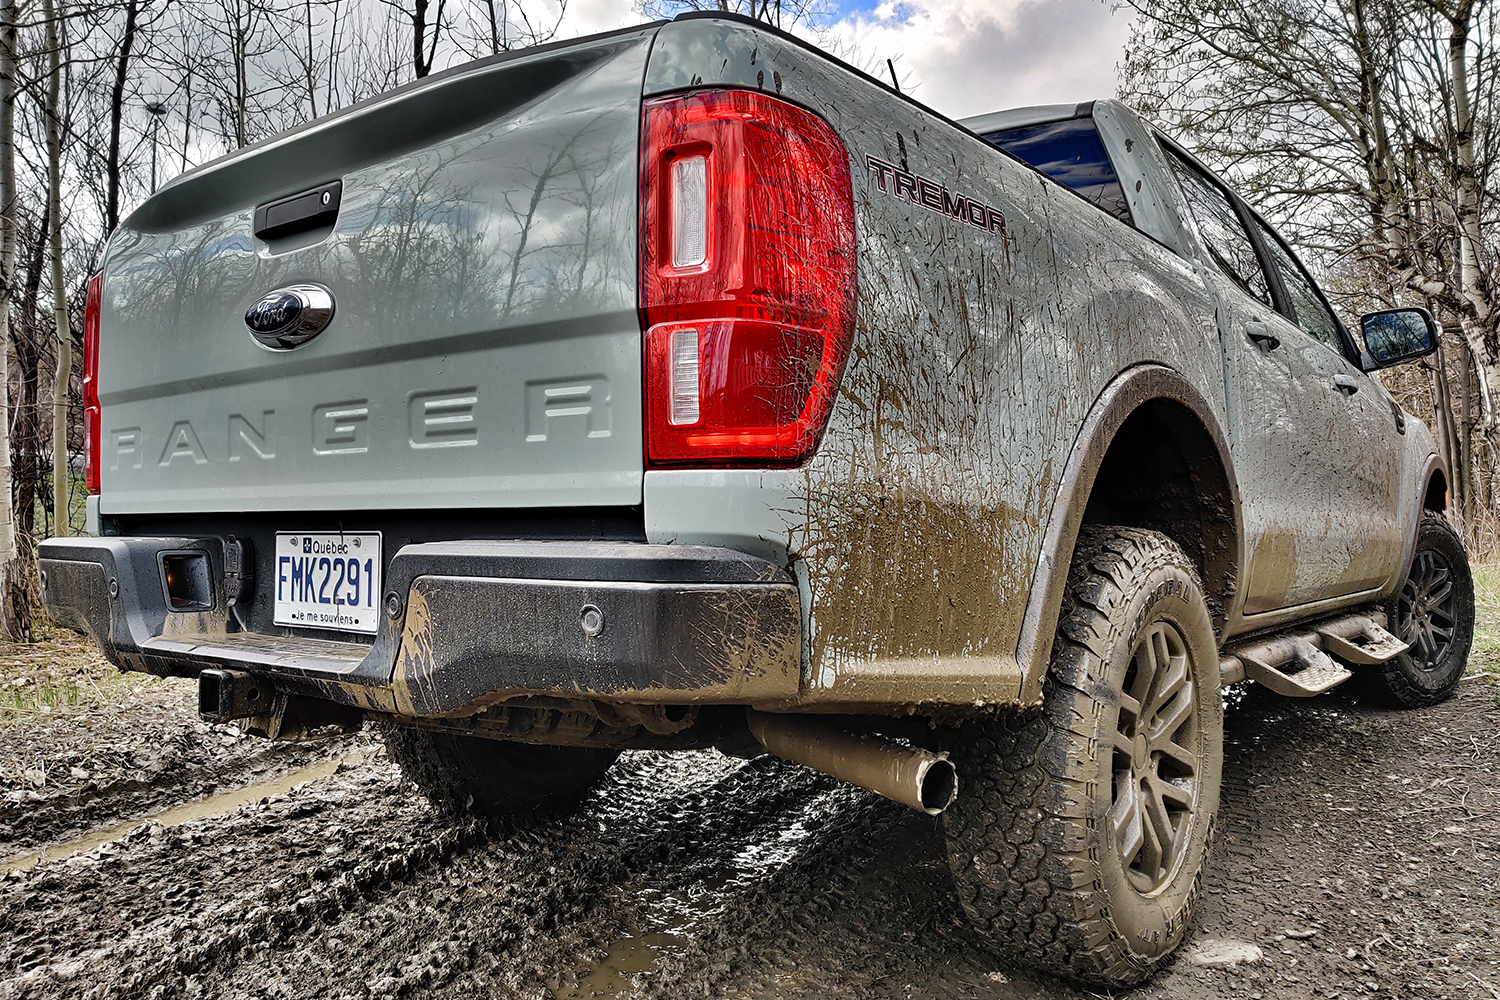 The back end of the 2021 Ford Ranger Tremor pickup truck after going off road